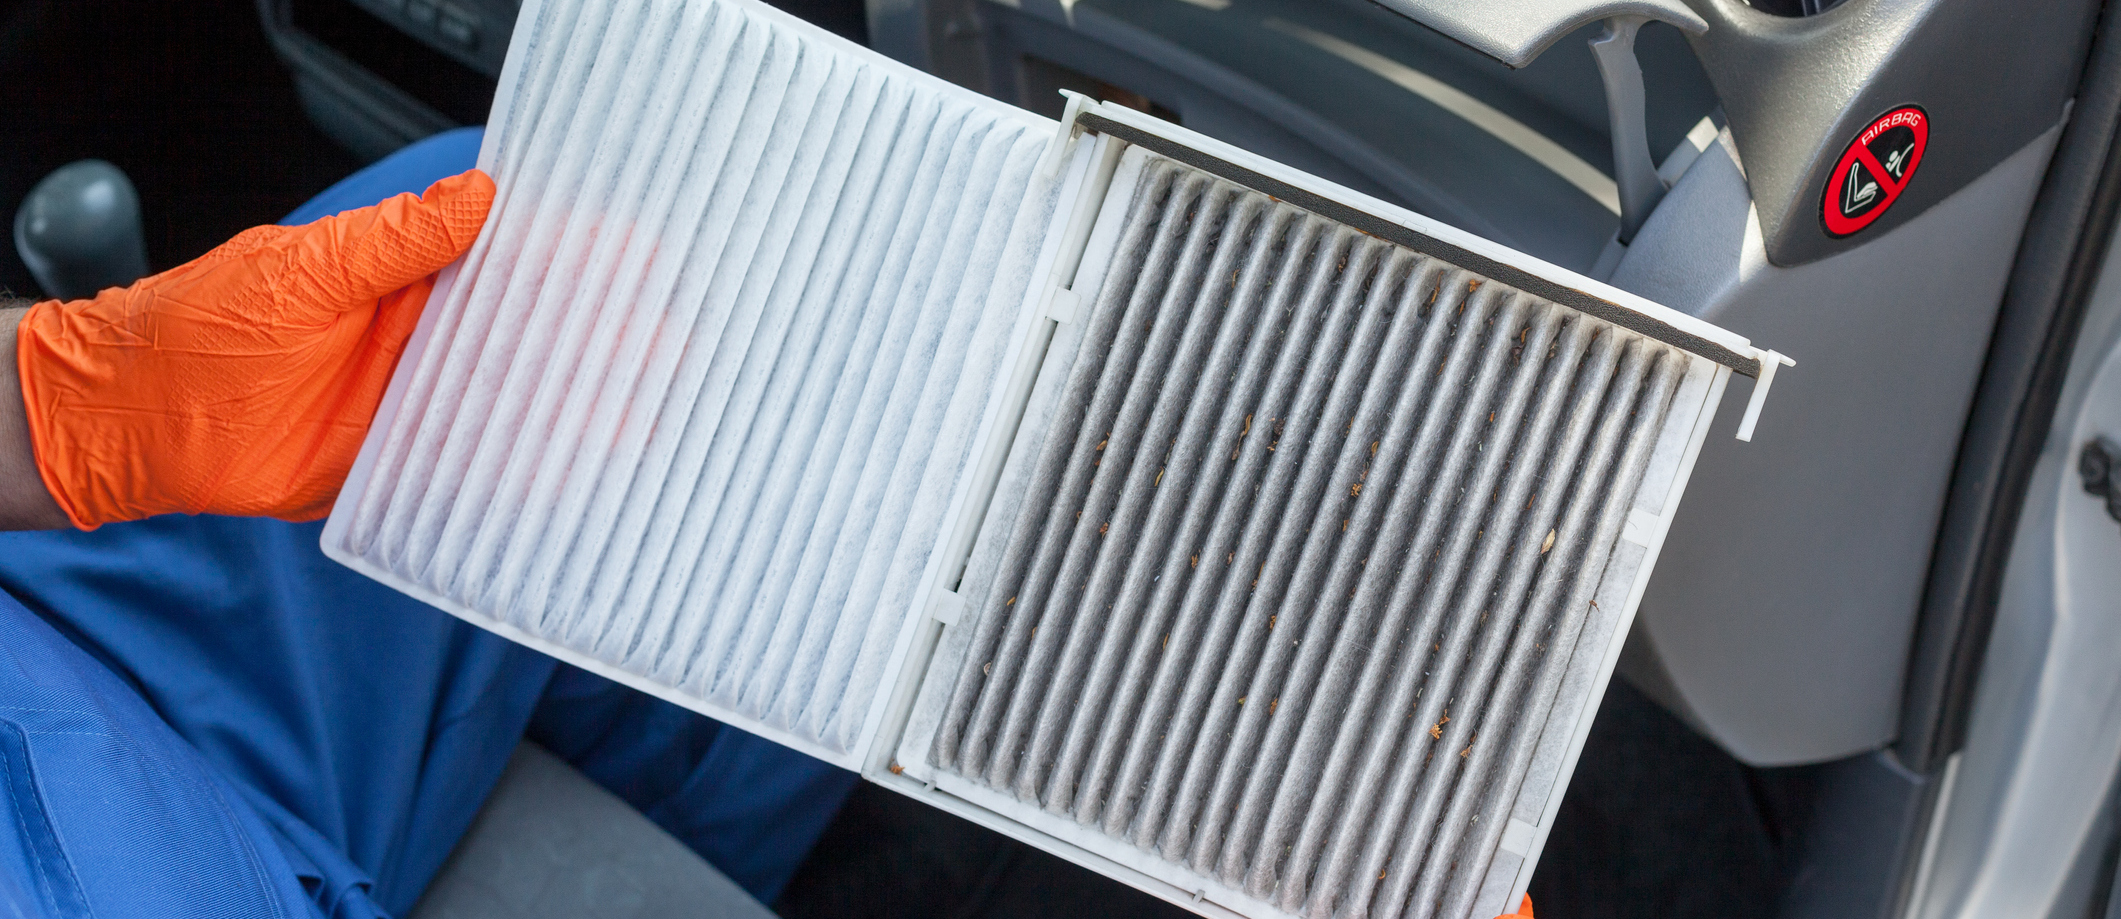 Cabin Air Filter Replacement near Chicago, IL